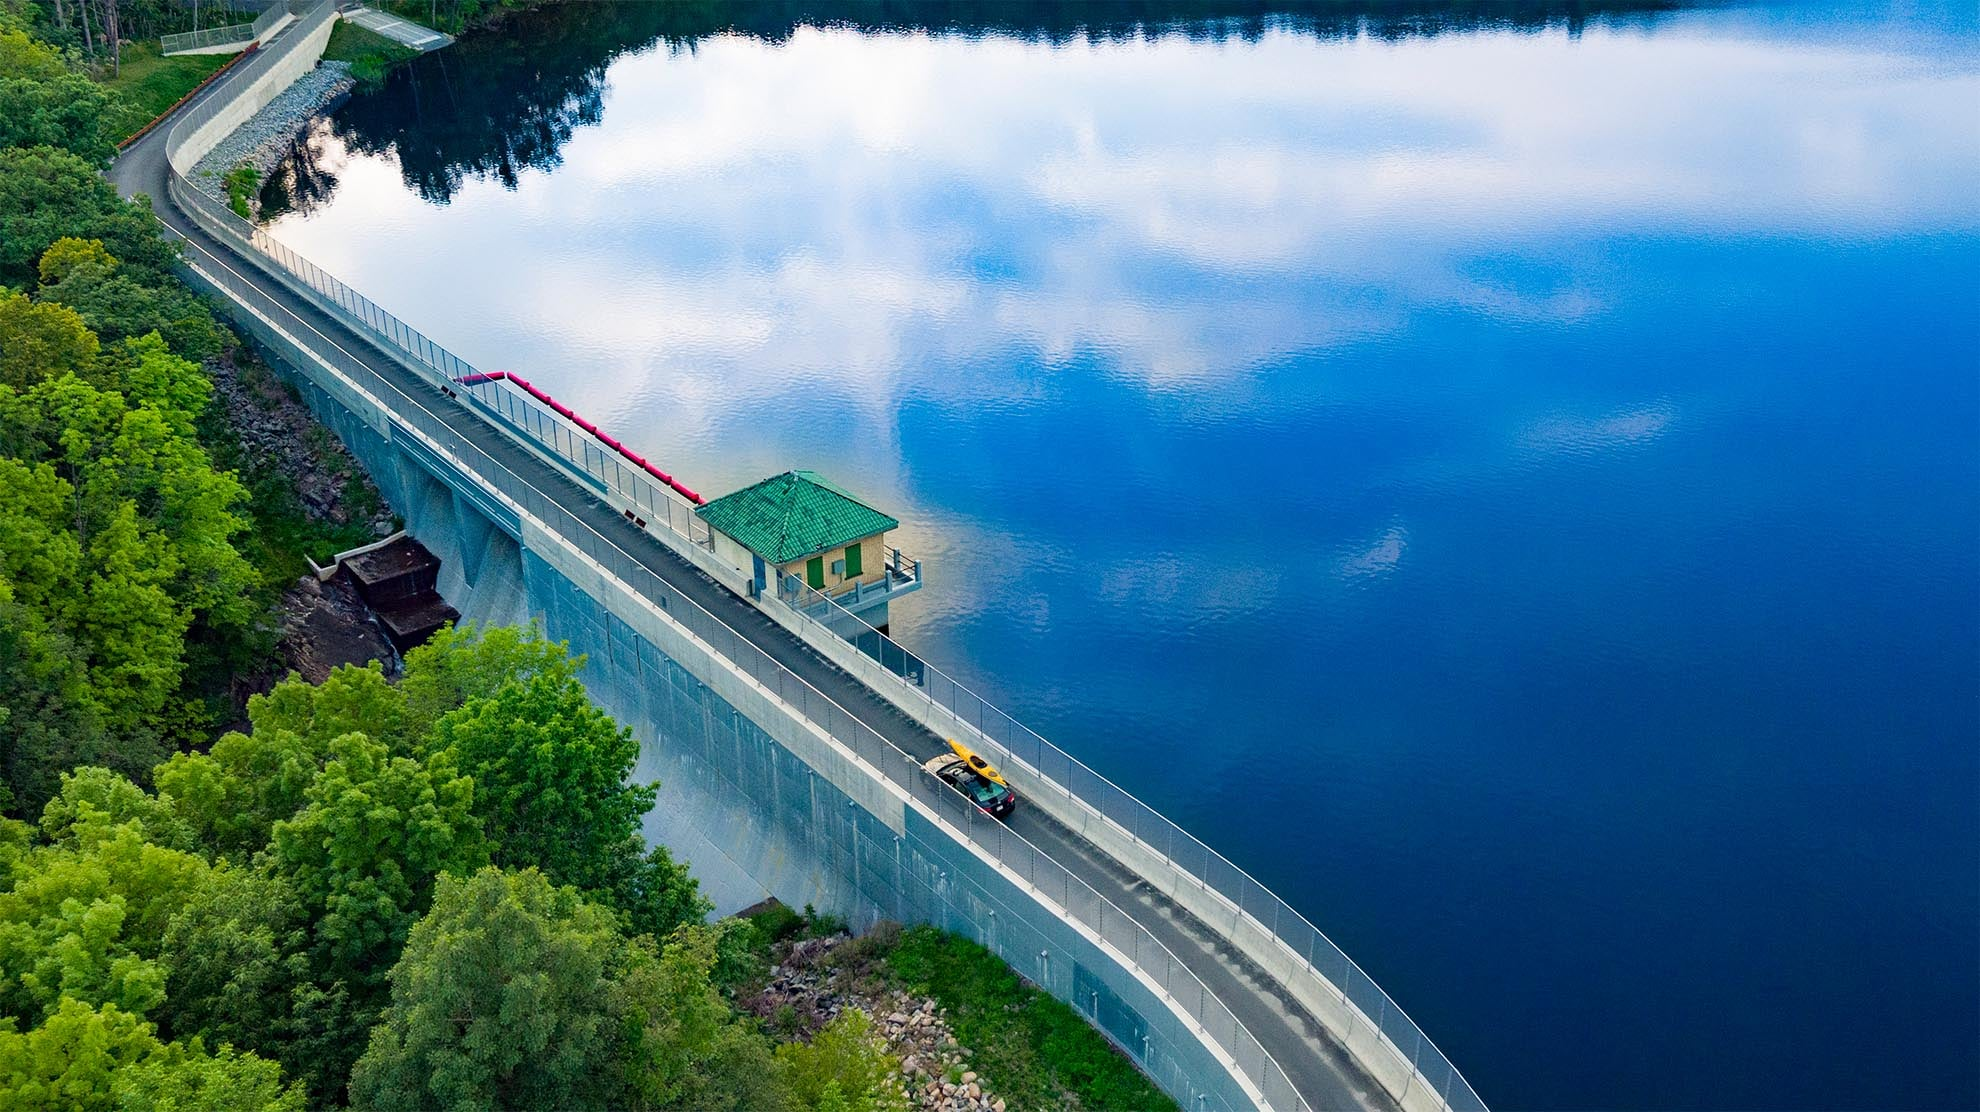 Drone Photograph of car with yellow kayak on roof crossing the Split Rock Dam